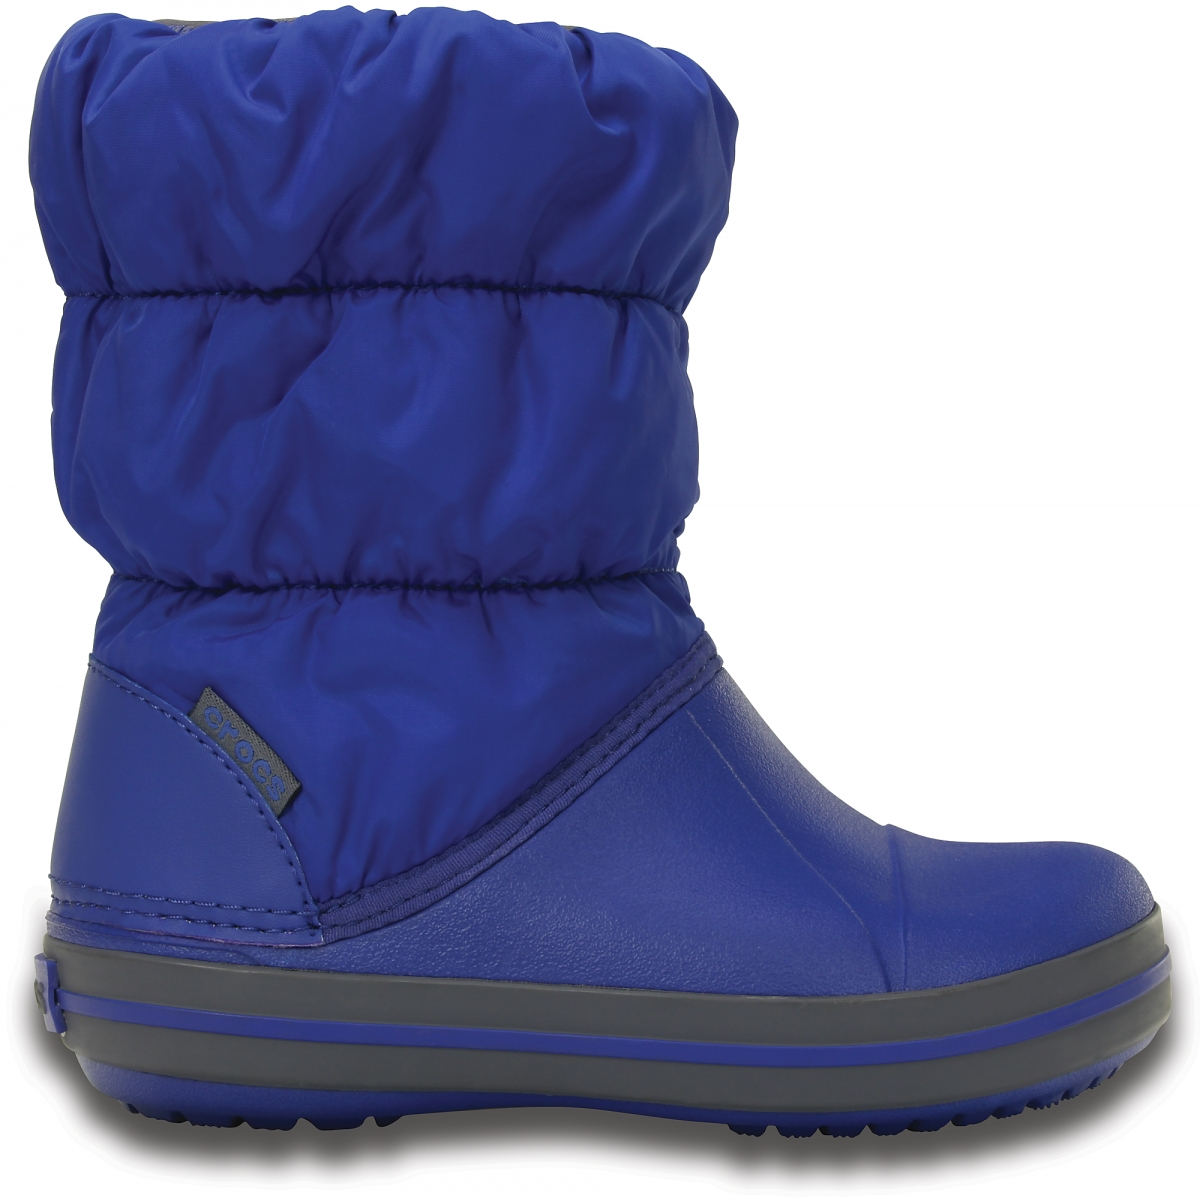 Crocs Winter Puff Boot Kids - Cerulean Blue/Light Grey, C11 (28-29)